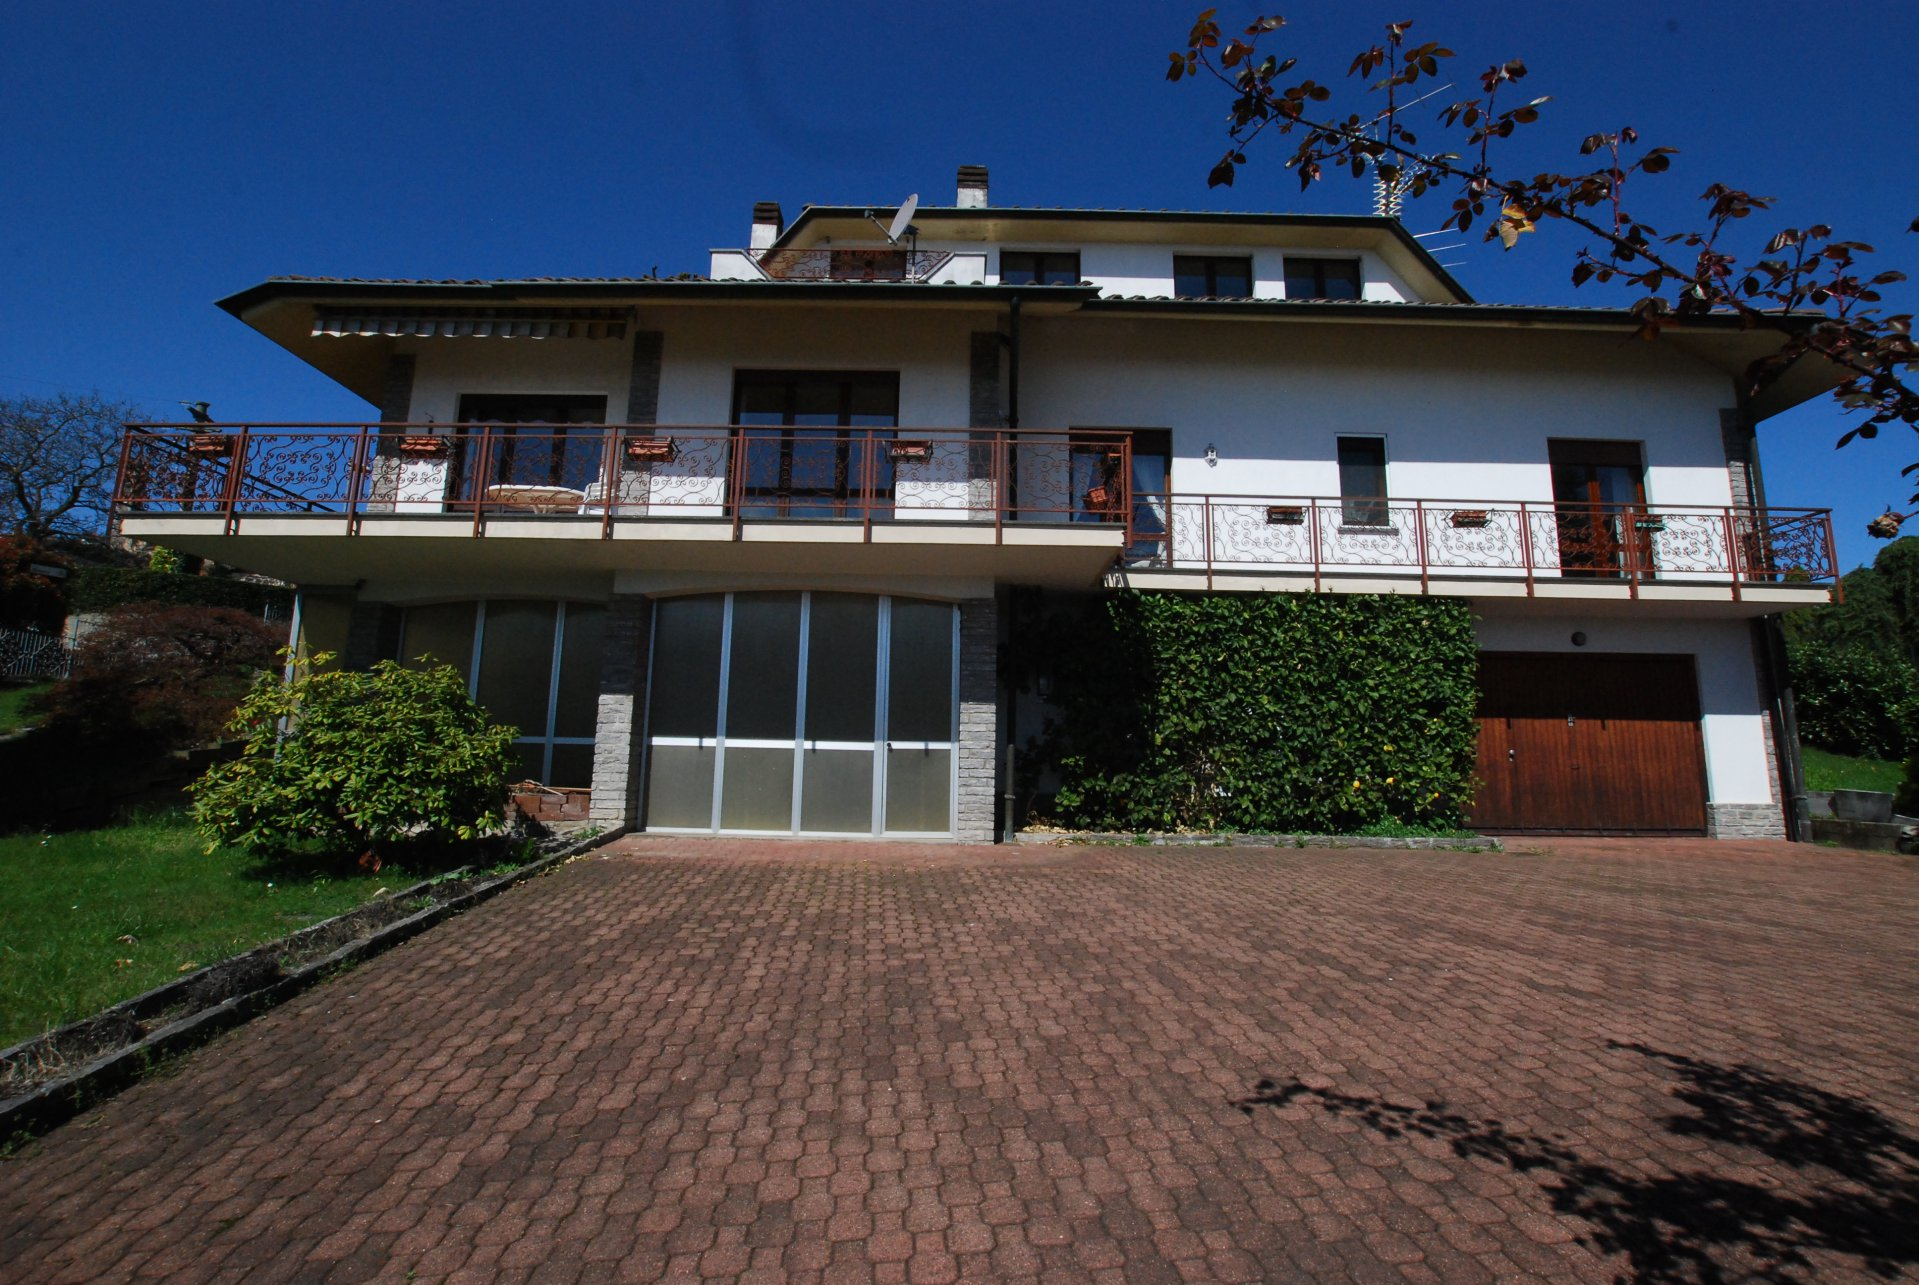 Wonderful lake view villa for sale in Massino Visconti - facade